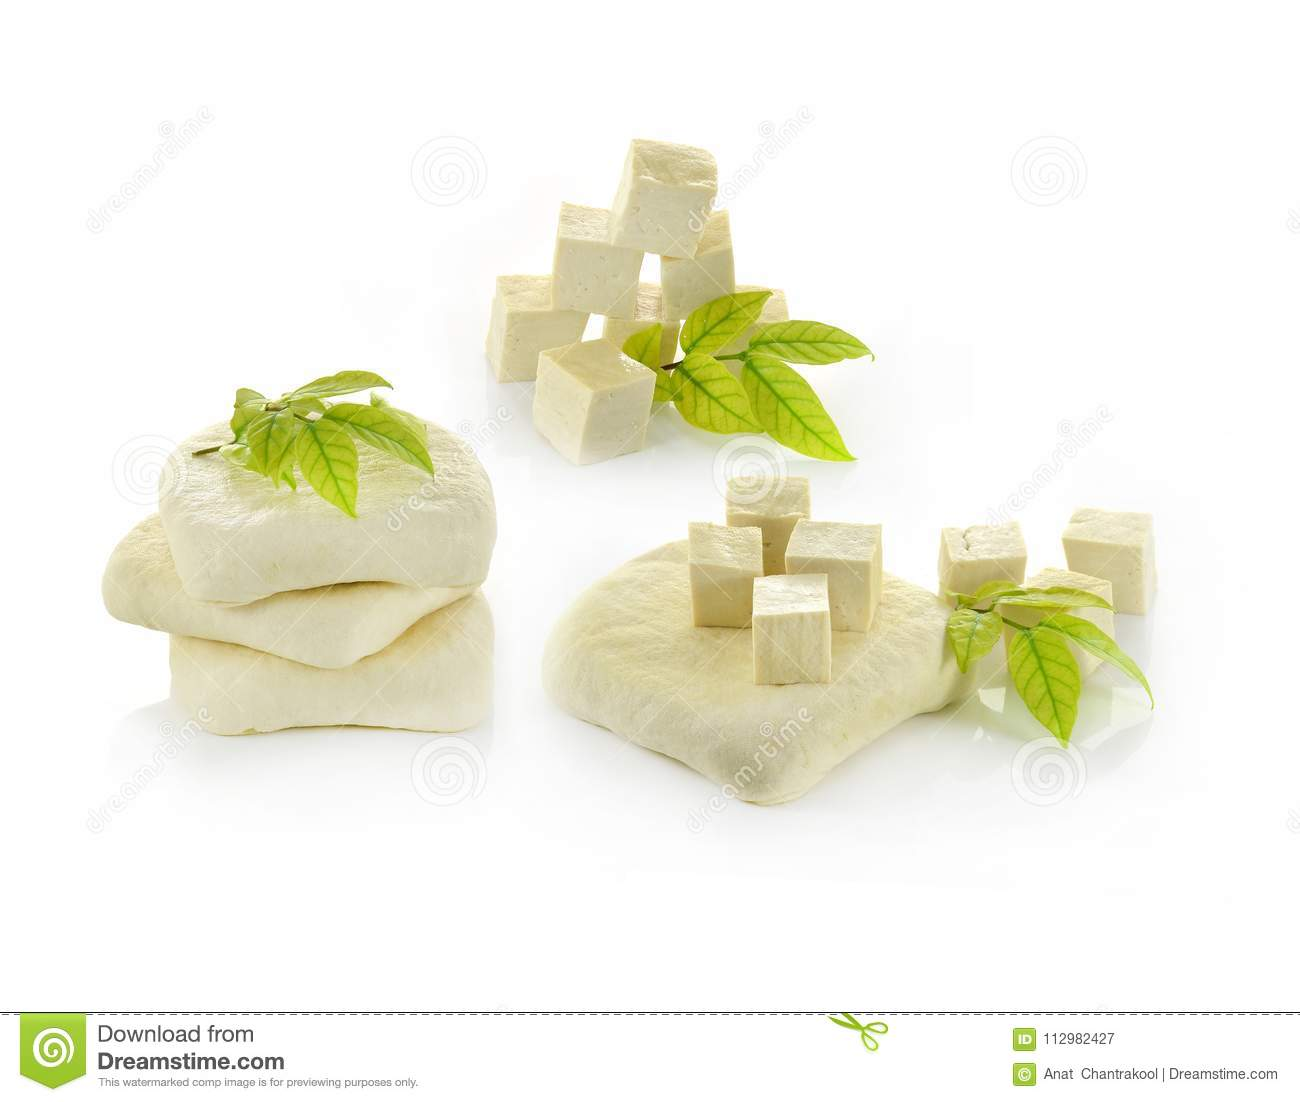 Tofu cheese on white background